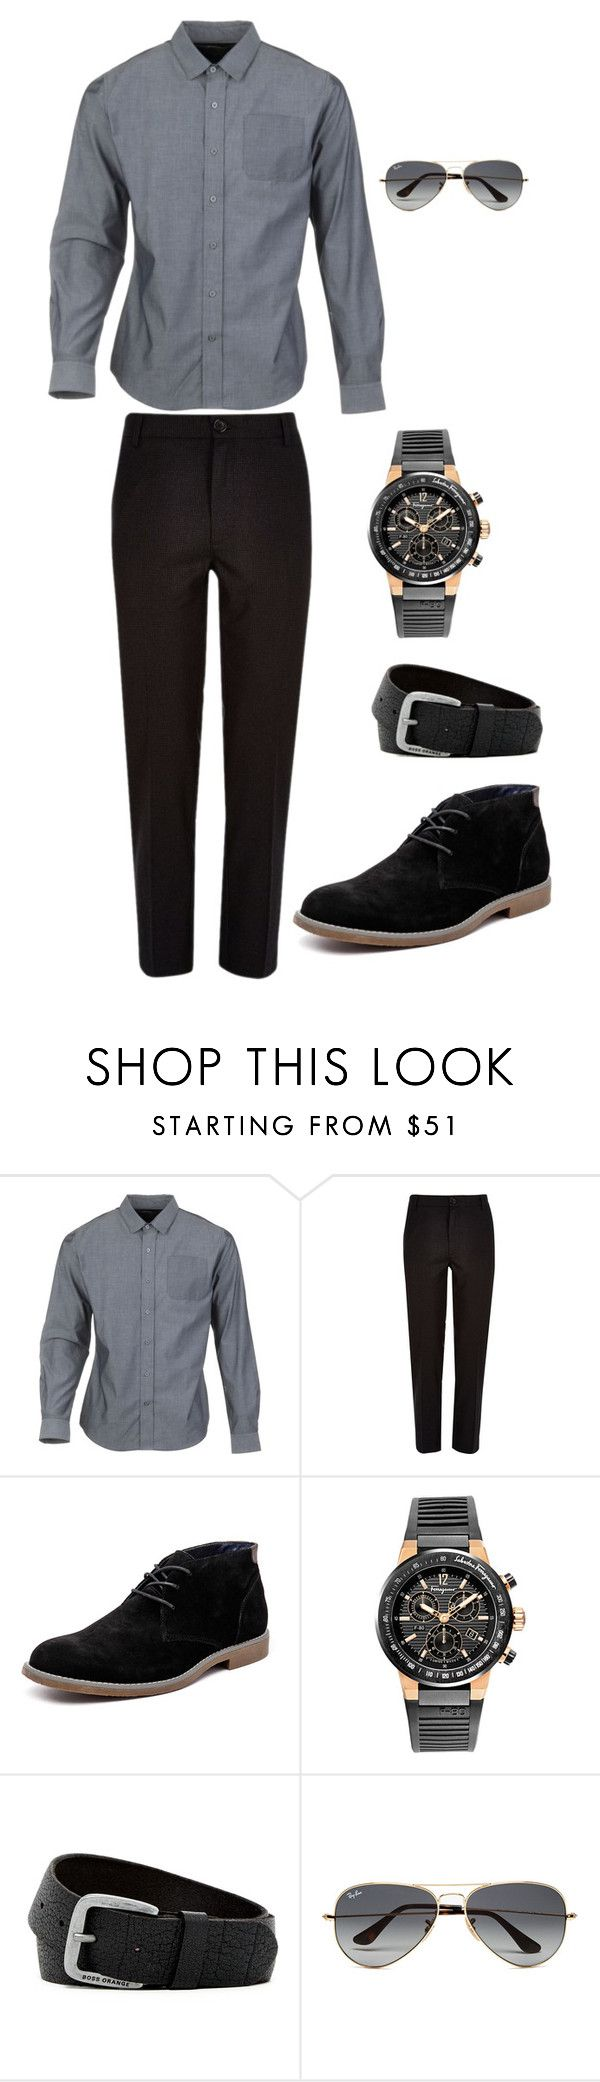 """""""Chapter 1 Well Hello Oliver"""" by sara-scott-i on Polyvore featuring Parker Dusseau, River Island, Hush Puppies, Salvatore Ferragamo, HUGO, Ray-Ban, men's fashion and menswear"""